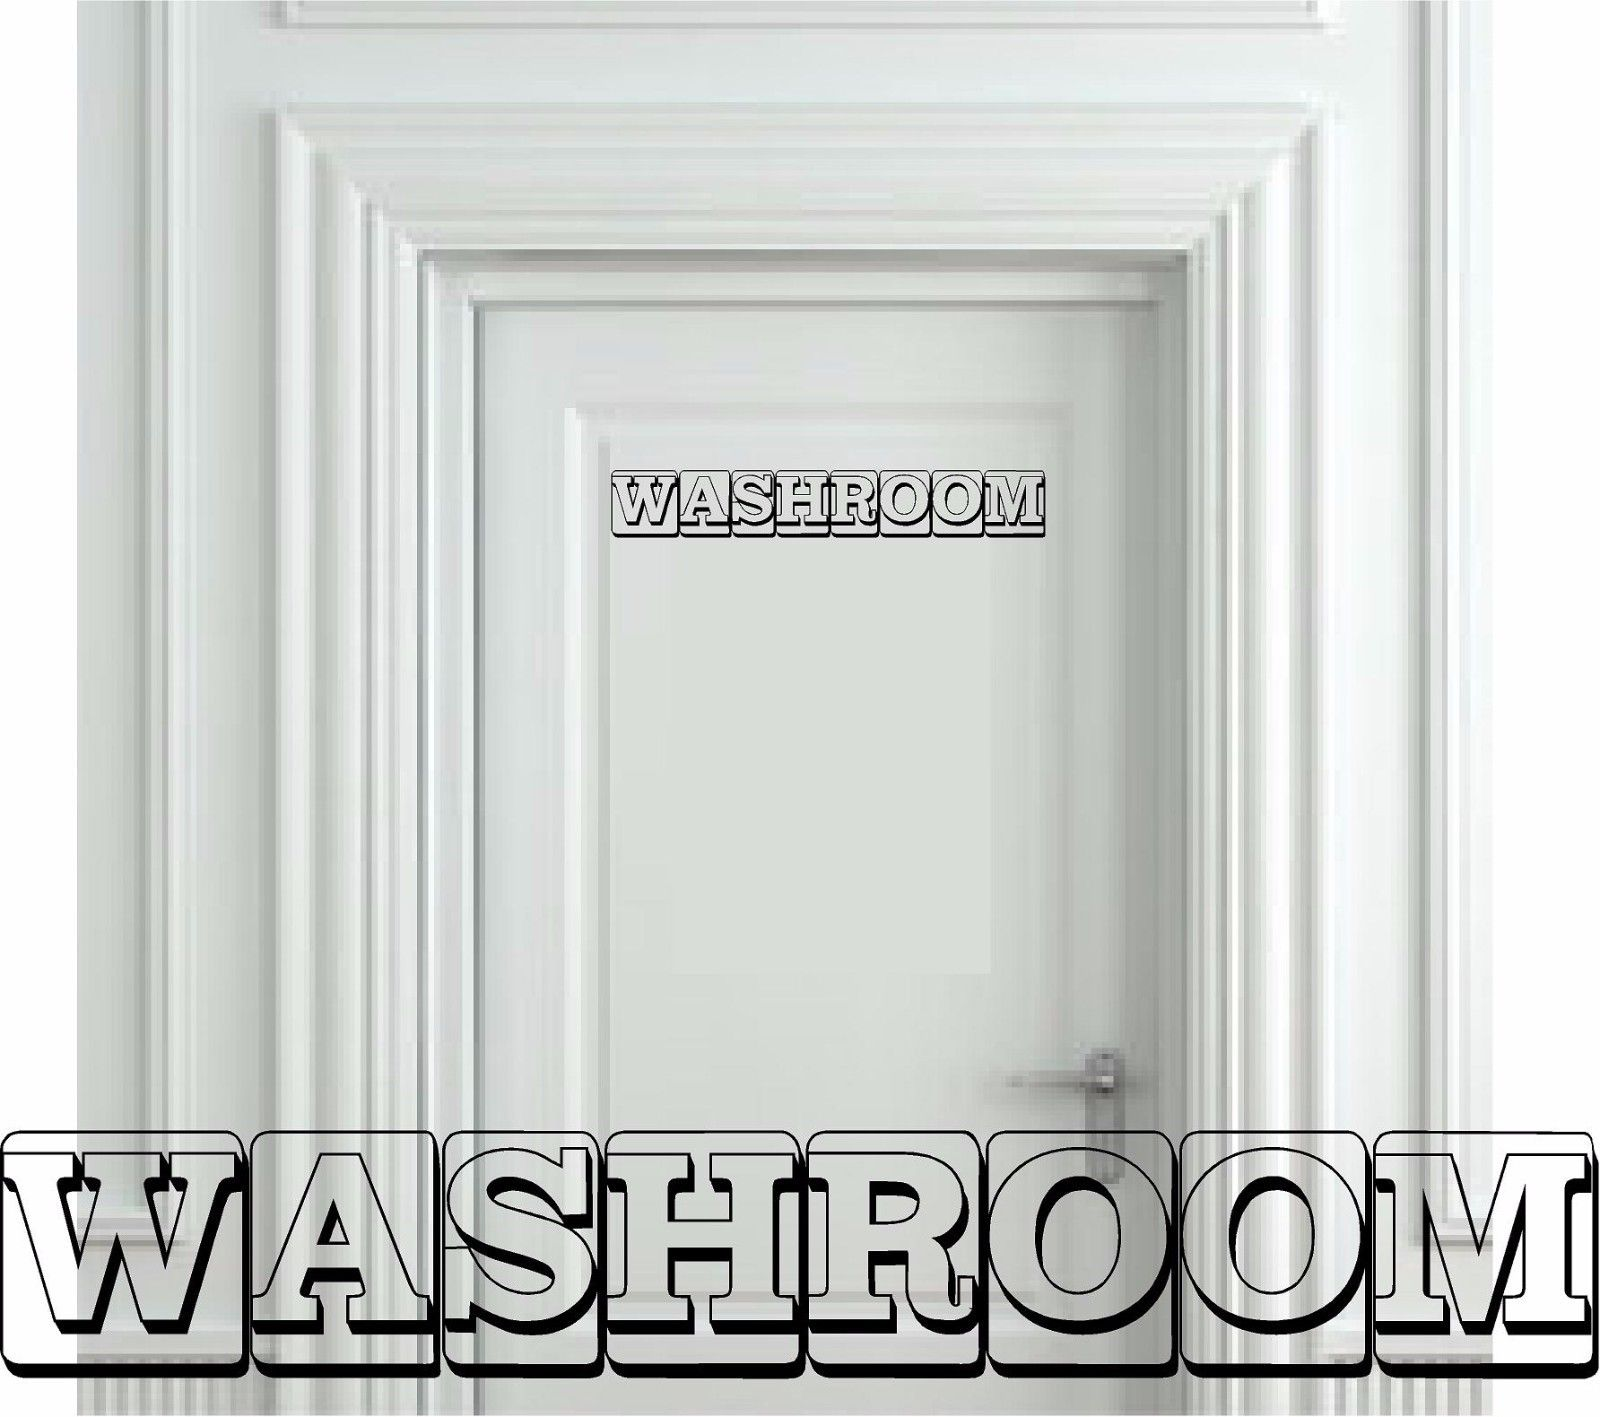 Washroom Bathroom Building Blocks Wall Decal Cute Funny Room Guests Bath vinyl sticker